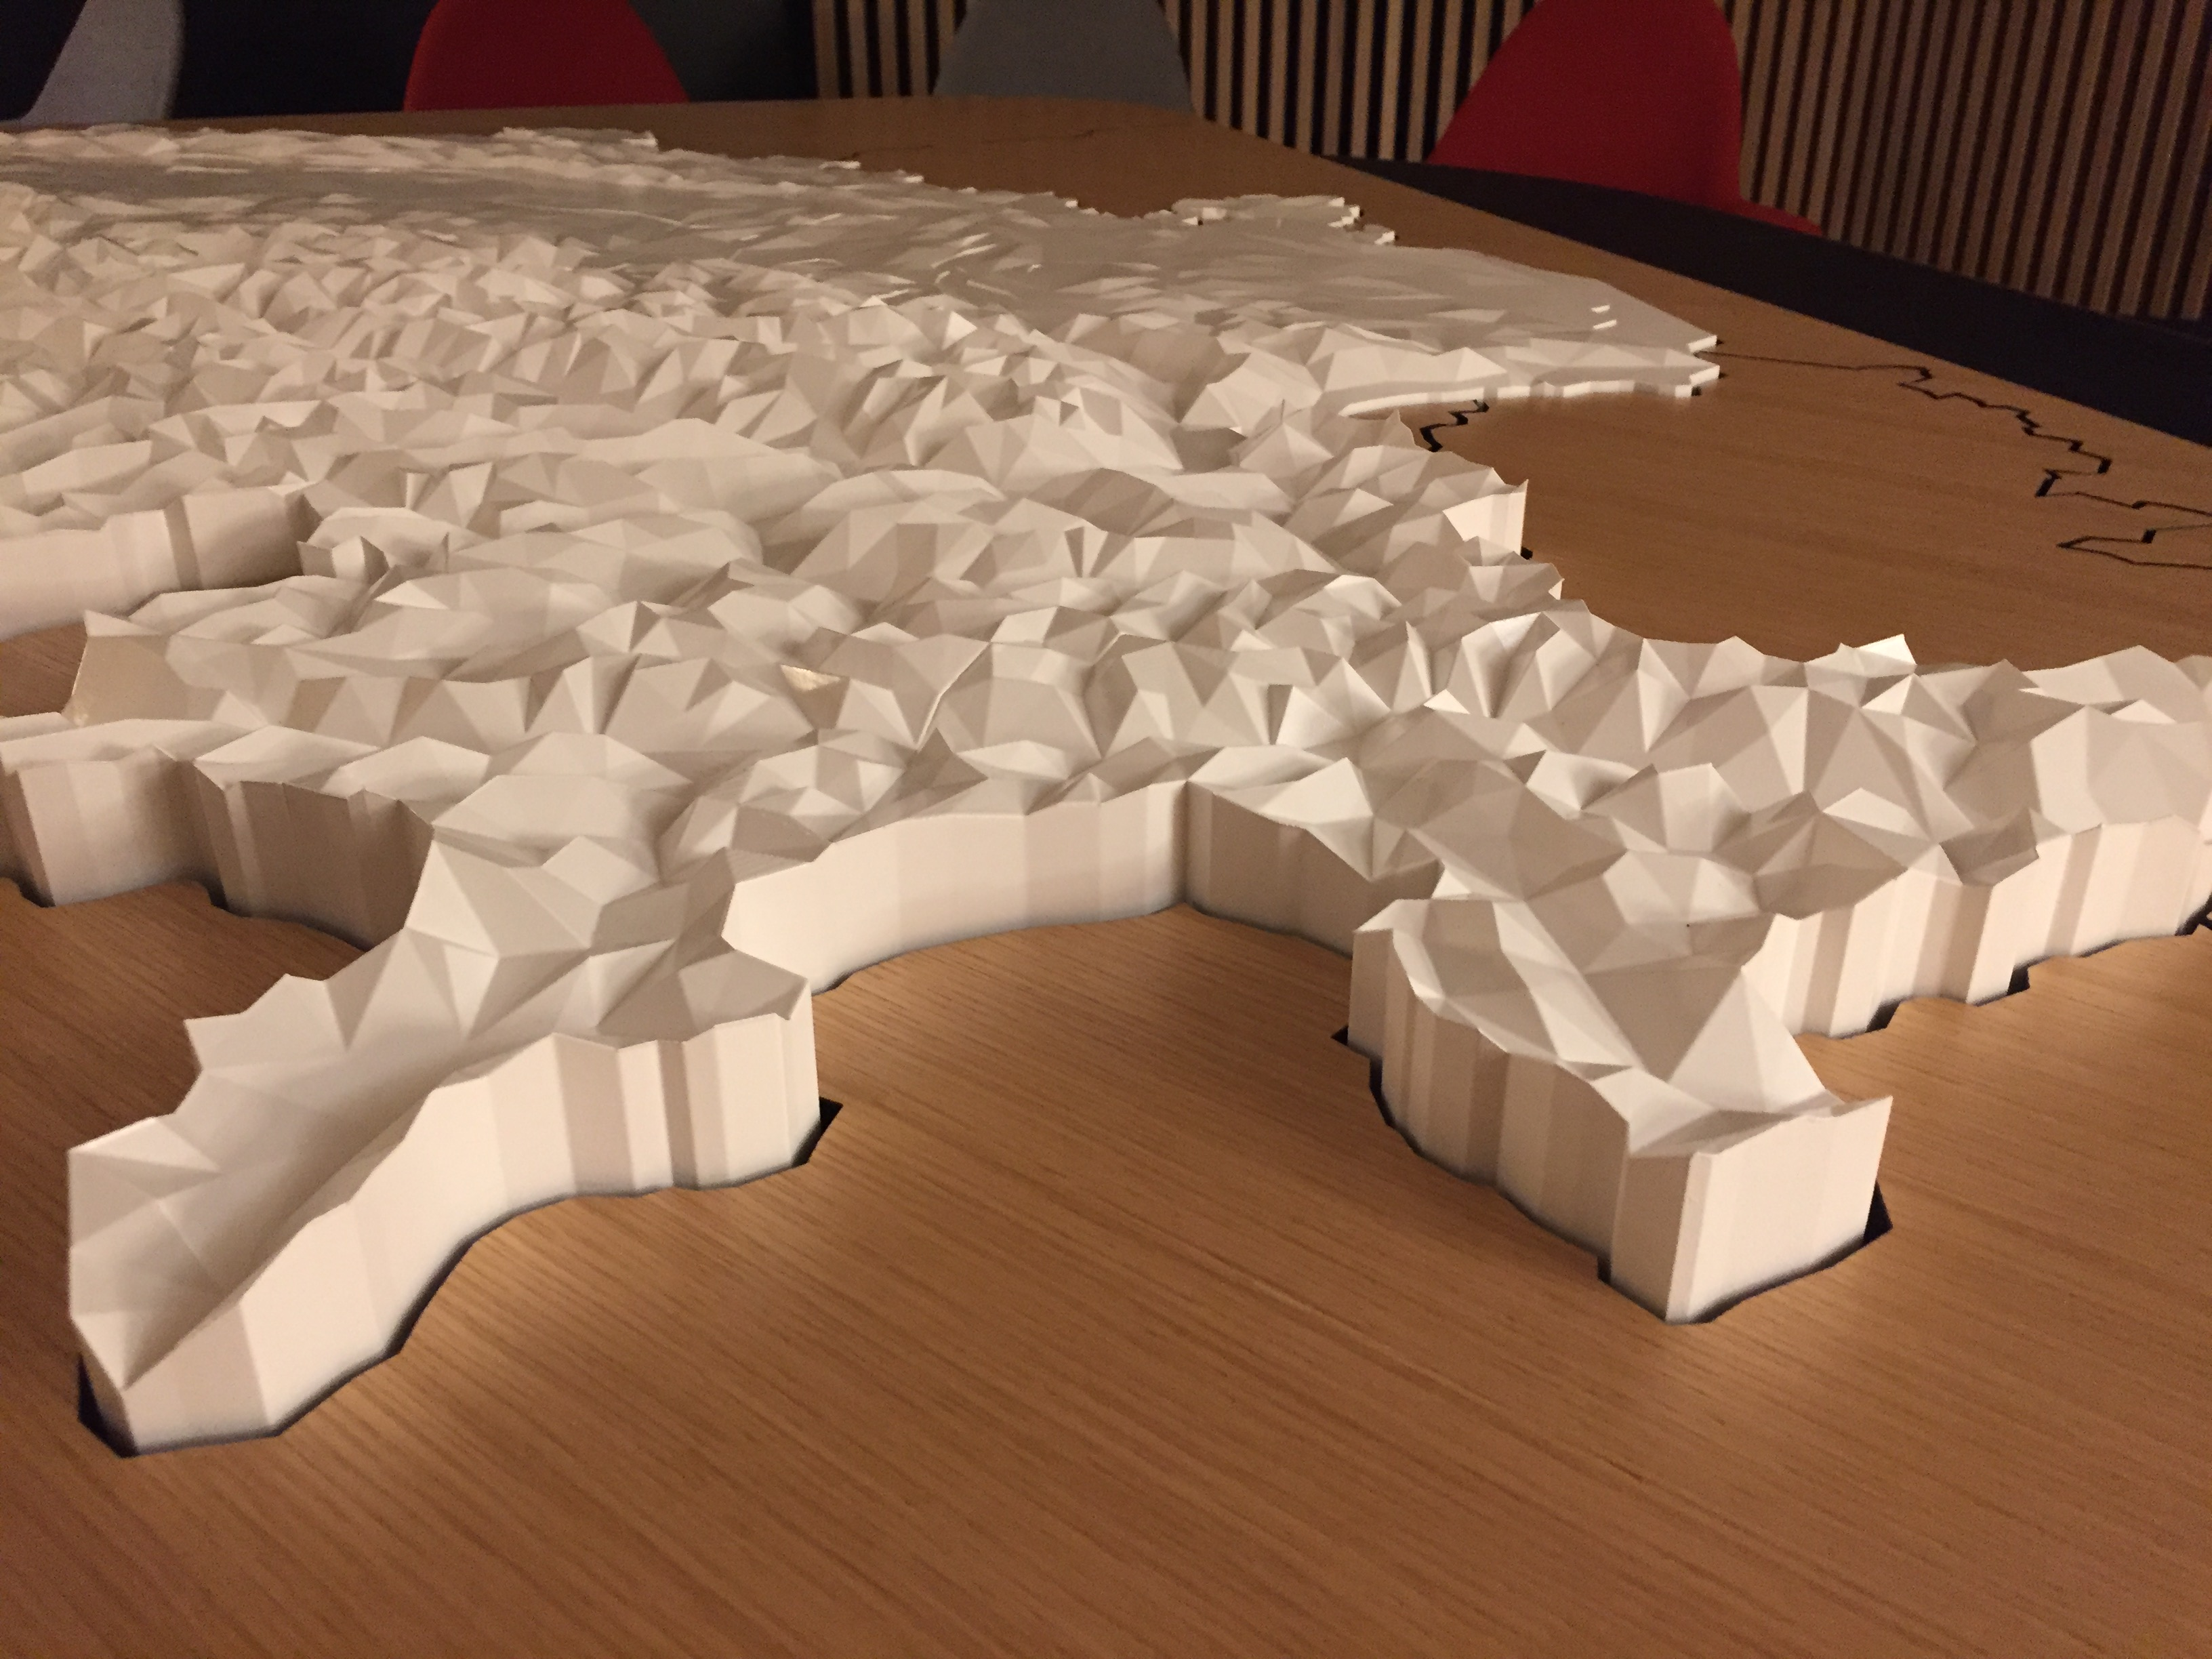 Low-Poly Karte der Schweiz in der Swiss Lounge A